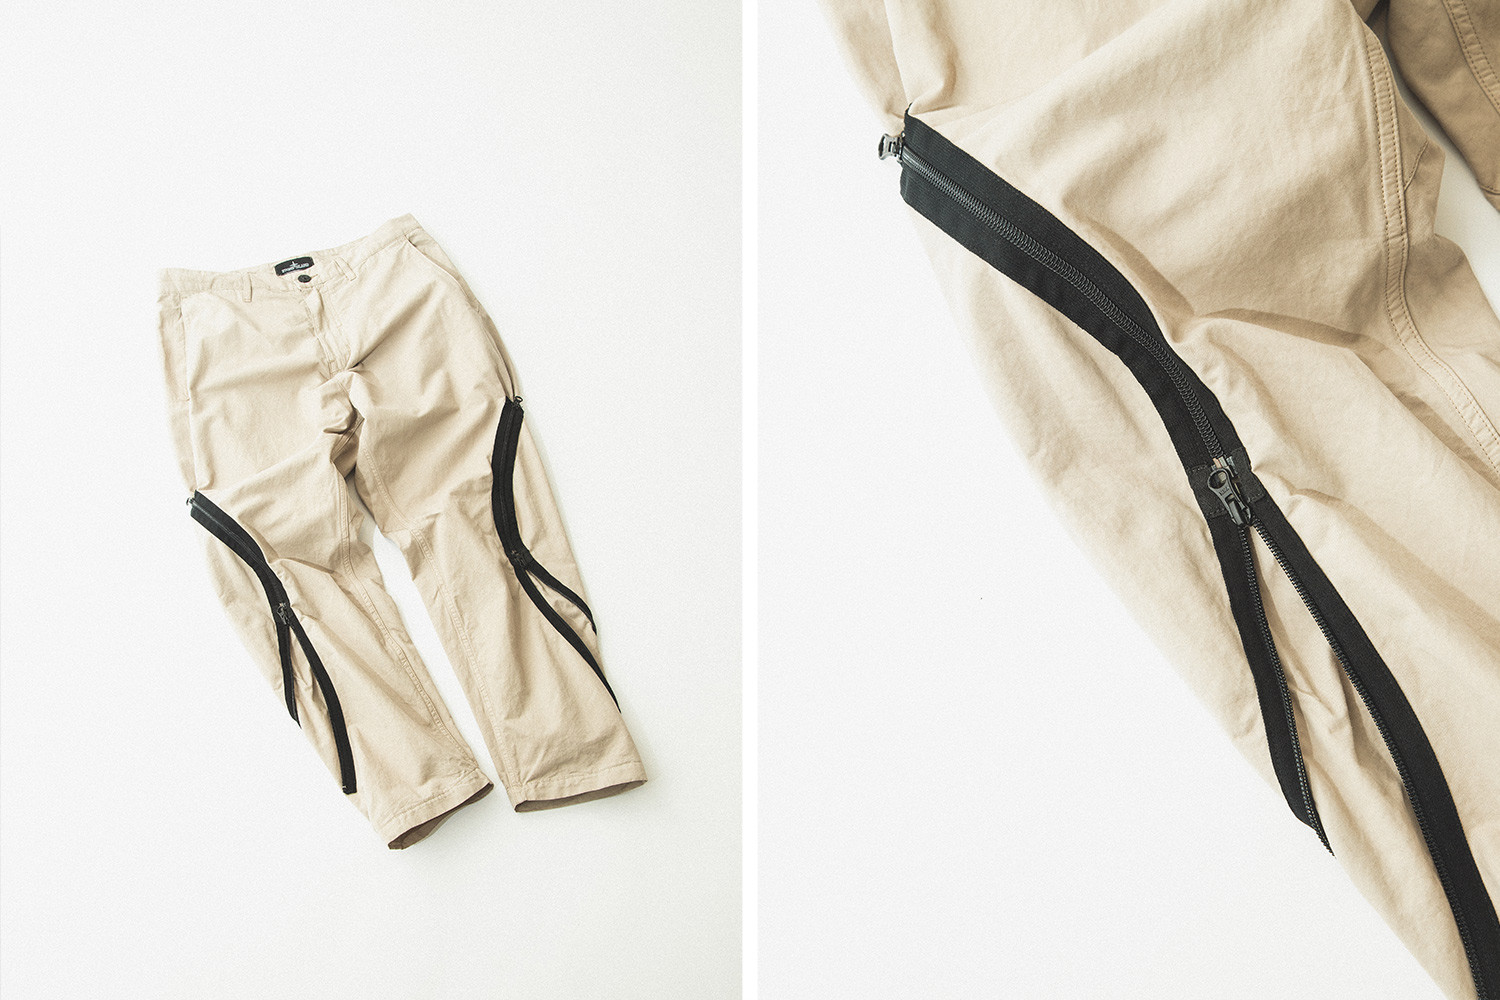 stone-island-spring-summer-2019-collection-new-arrivals-3